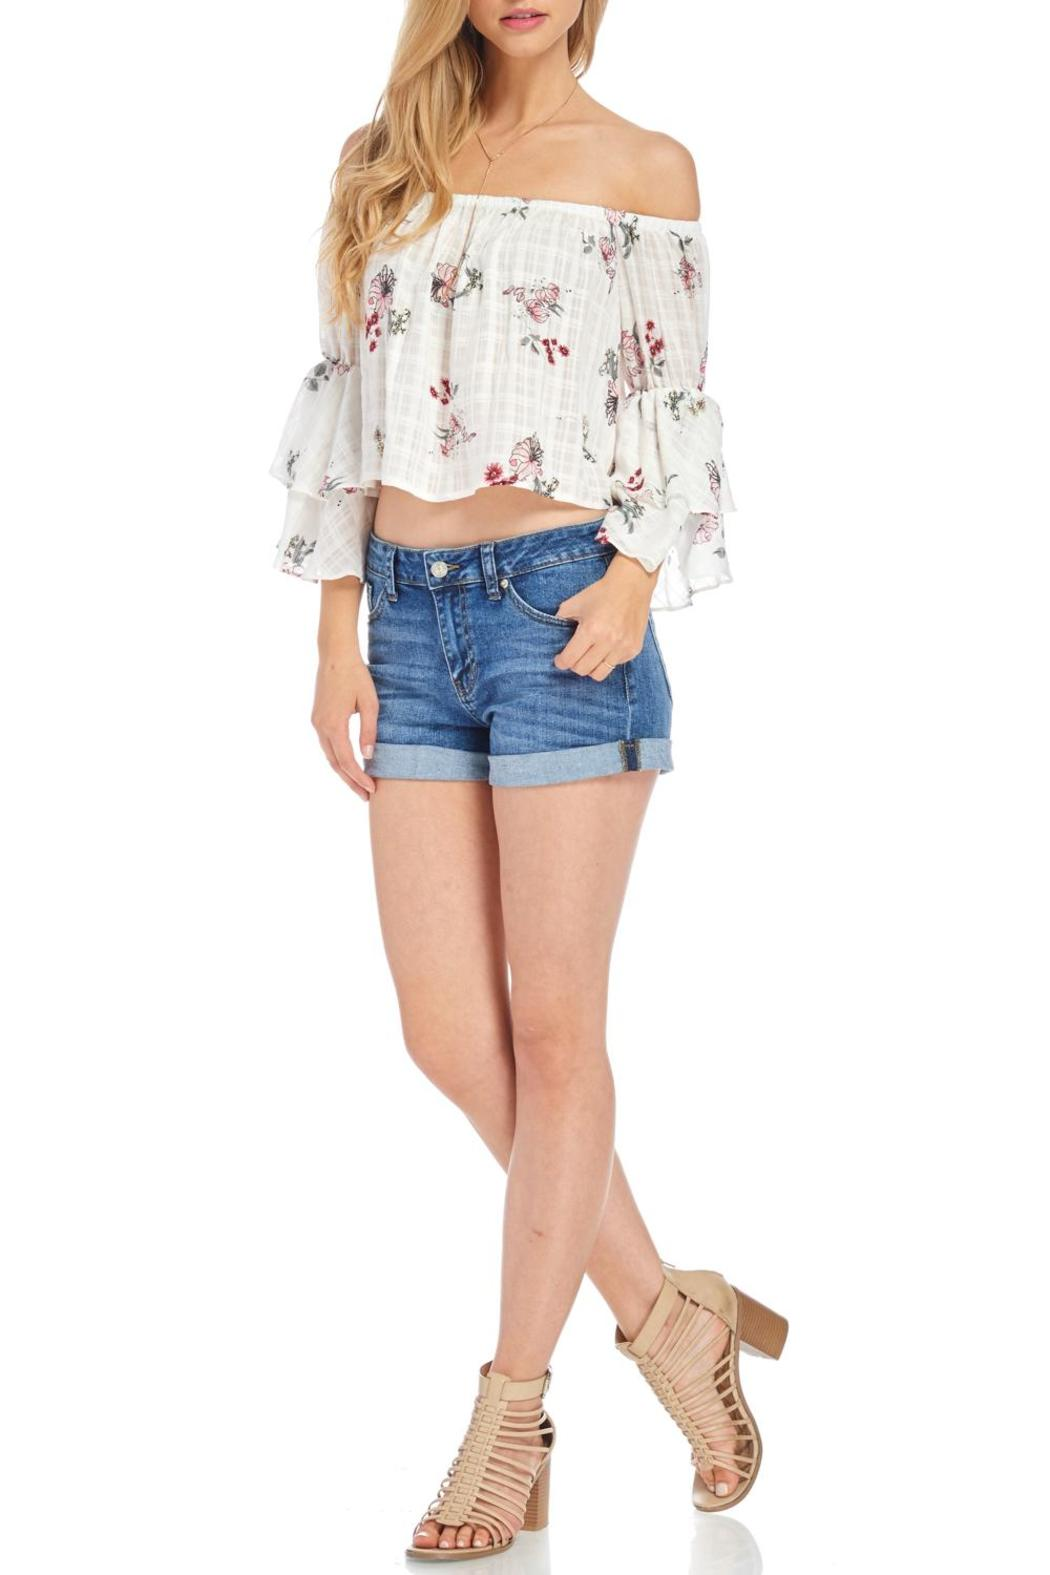 Audrey 31 Floral Crop Top From Florida By Apricot Lane St Armands